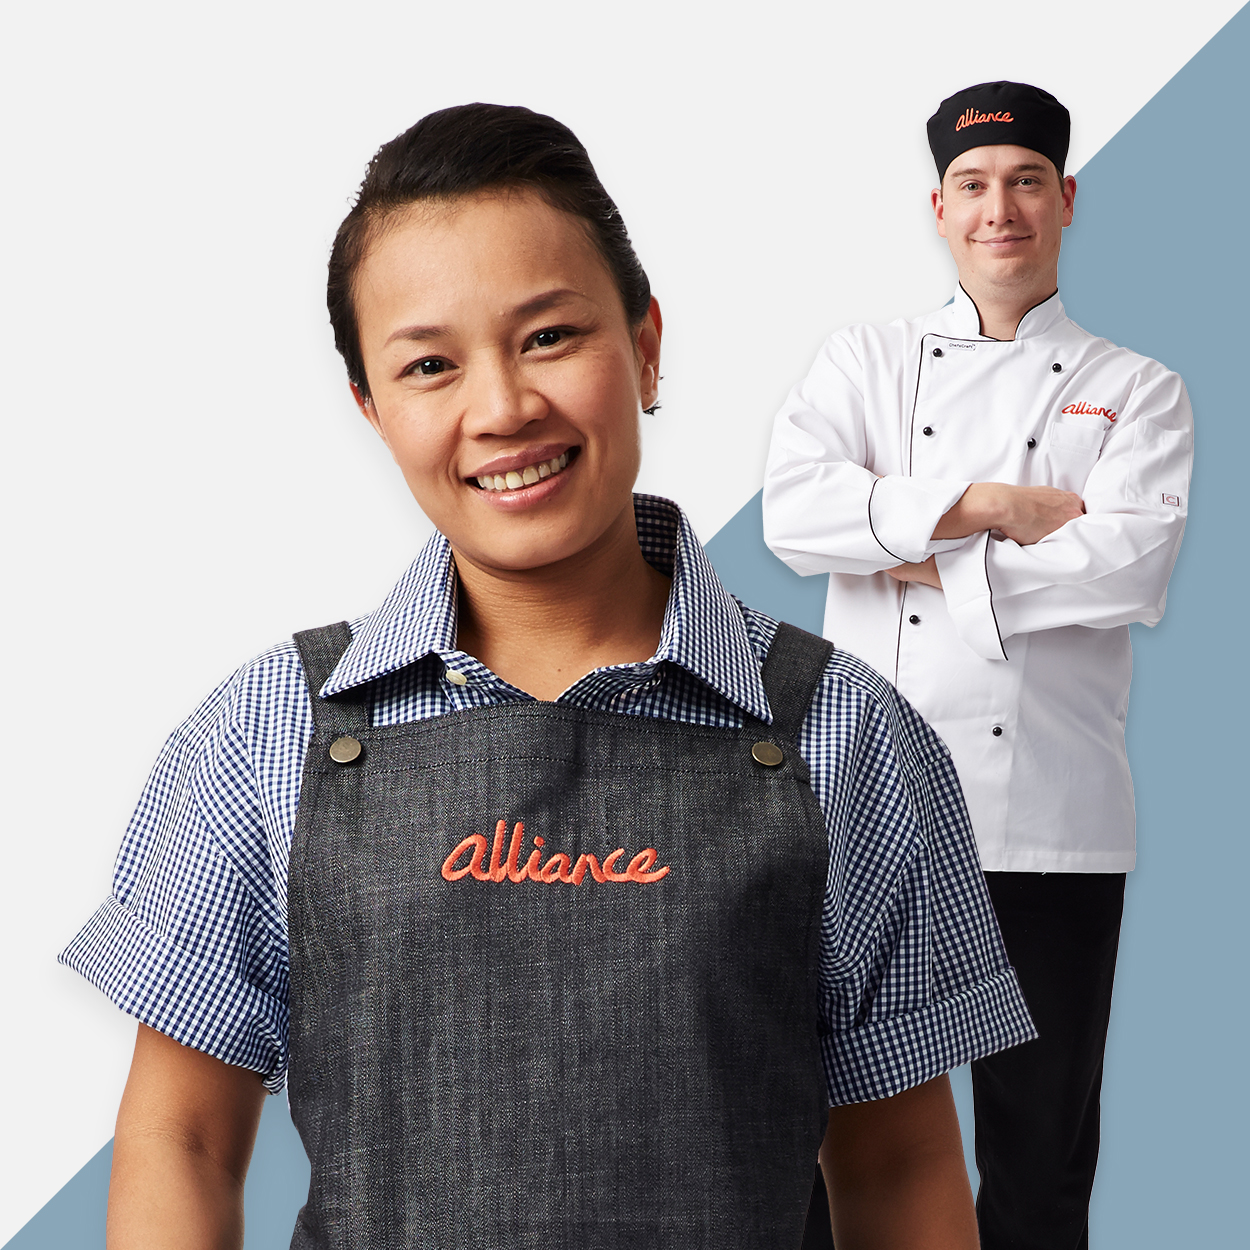 Alliance rebranded uniforms, women in branded apron and man in branded chef hat and jacket